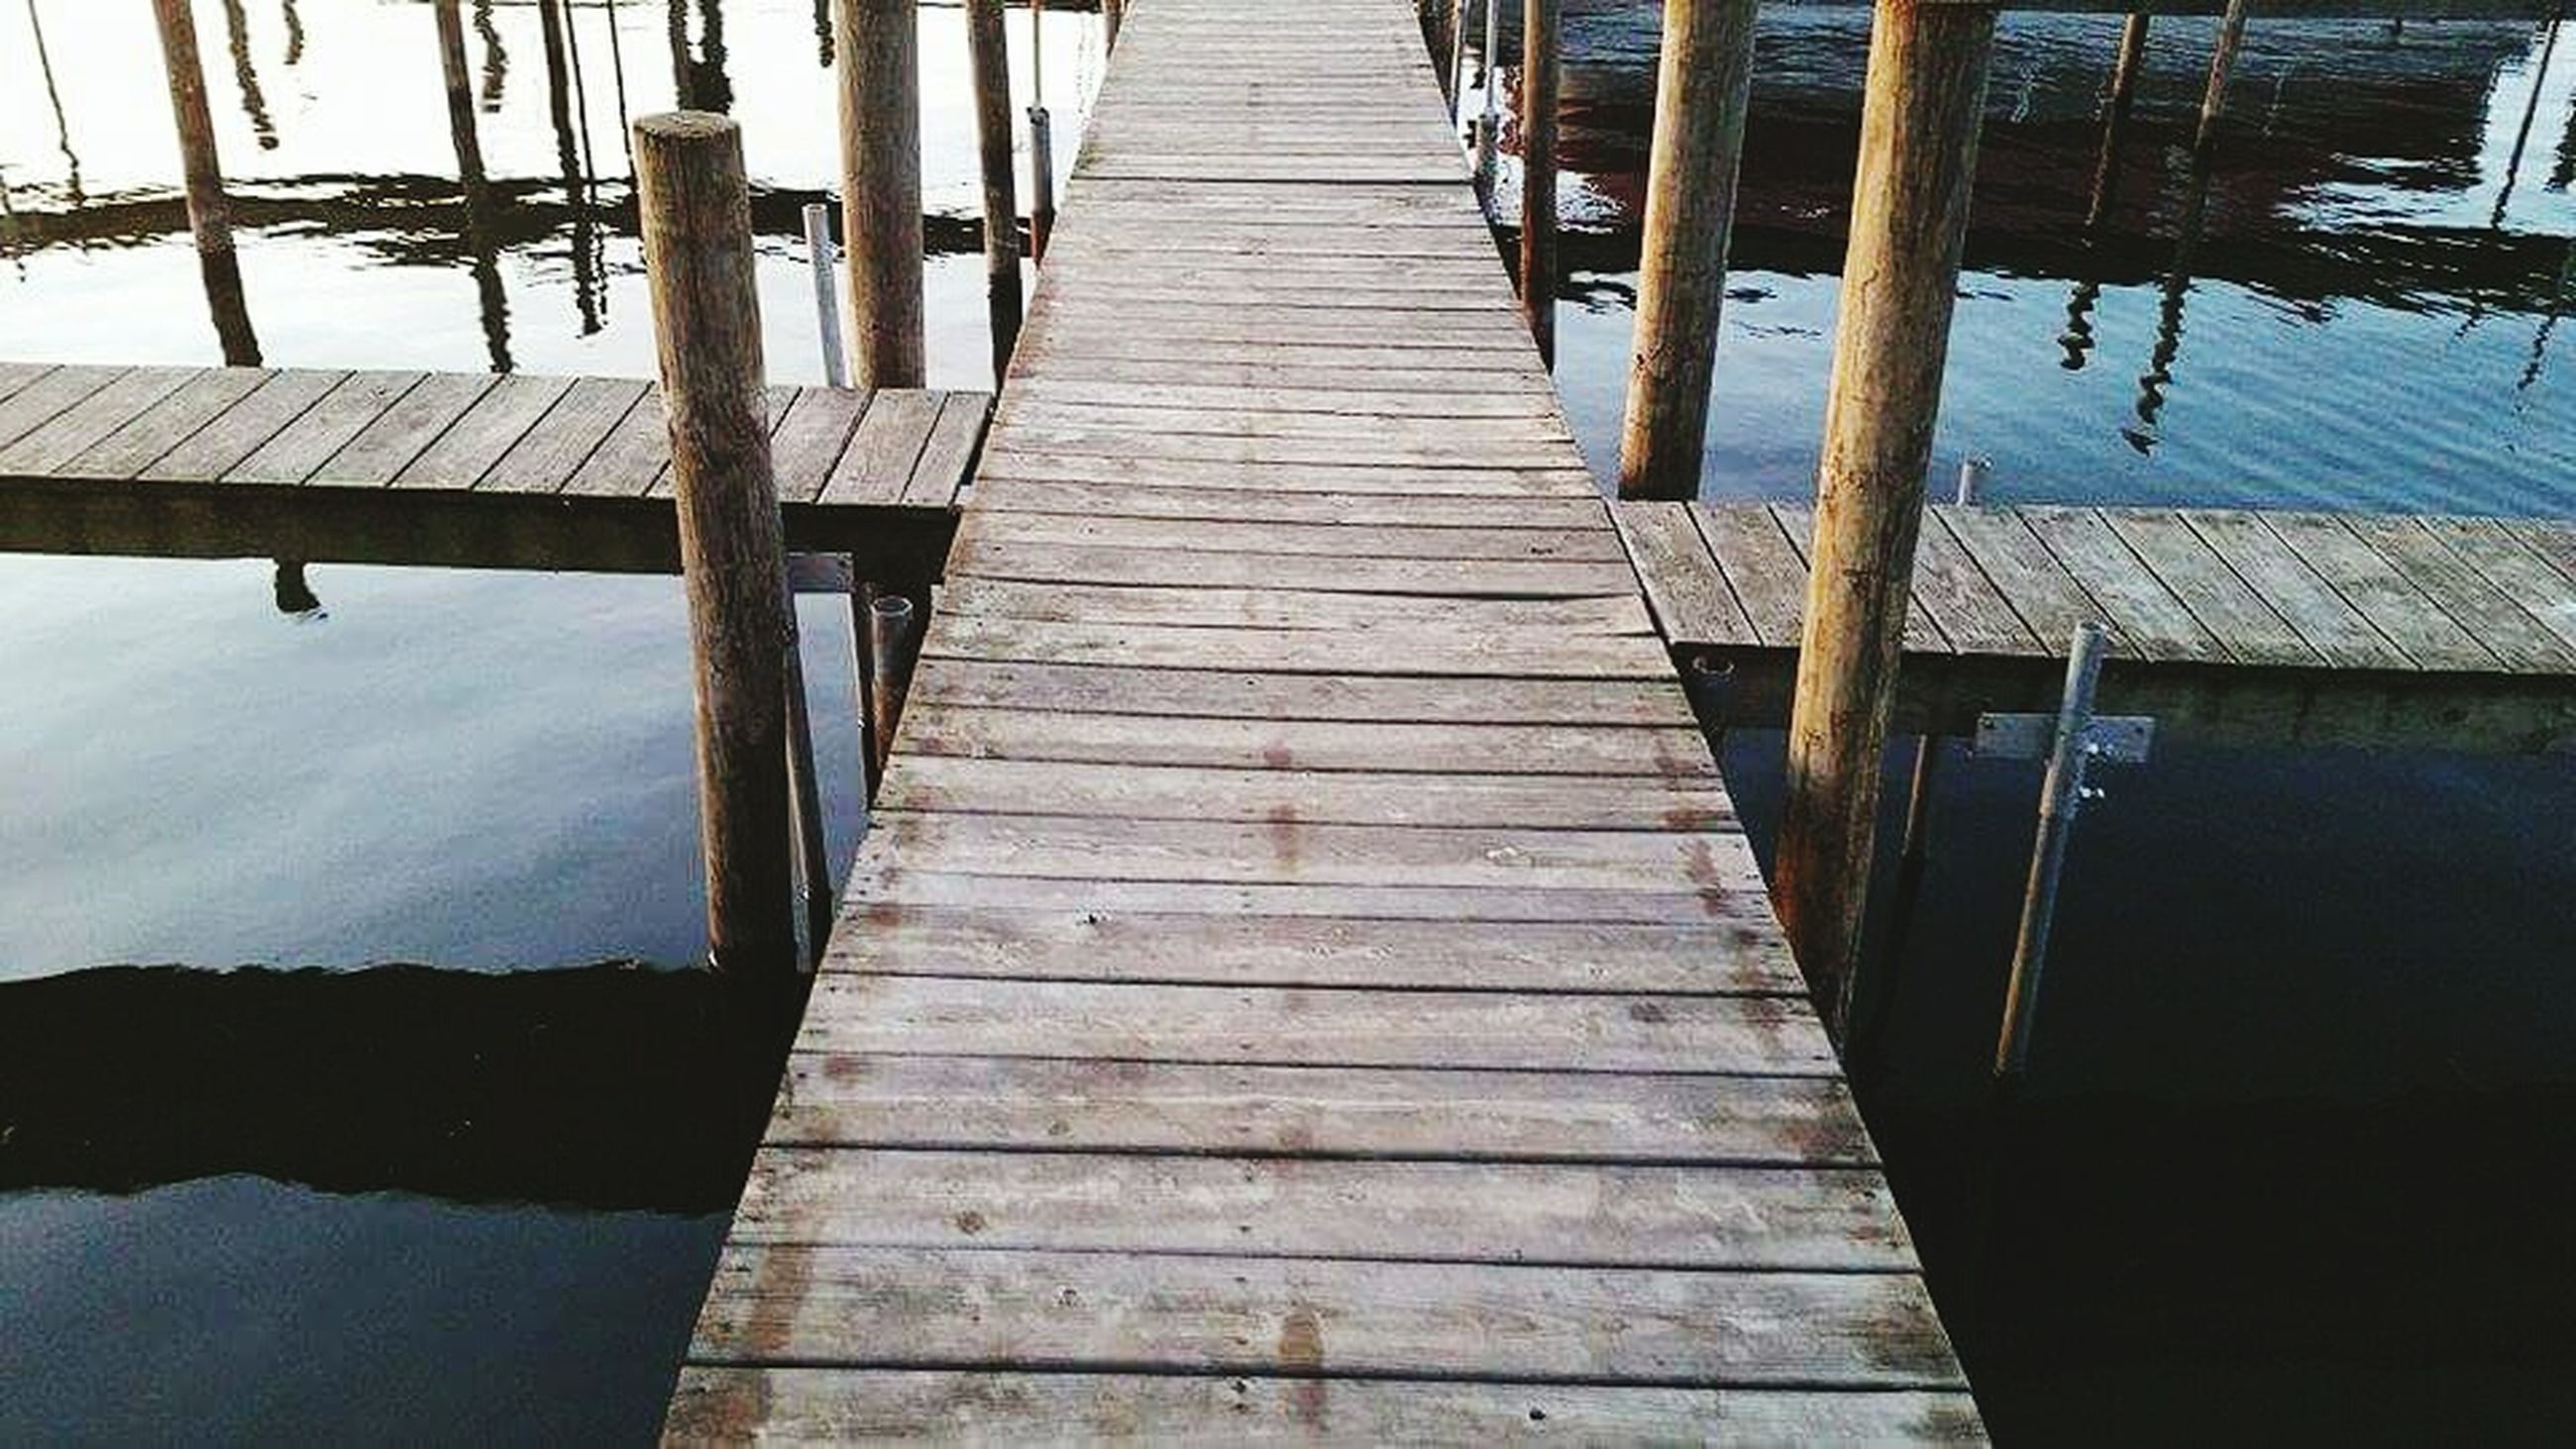 water, railing, pier, built structure, the way forward, wood - material, architecture, diminishing perspective, wood, footbridge, boardwalk, day, river, reflection, jetty, no people, sea, connection, lake, outdoors